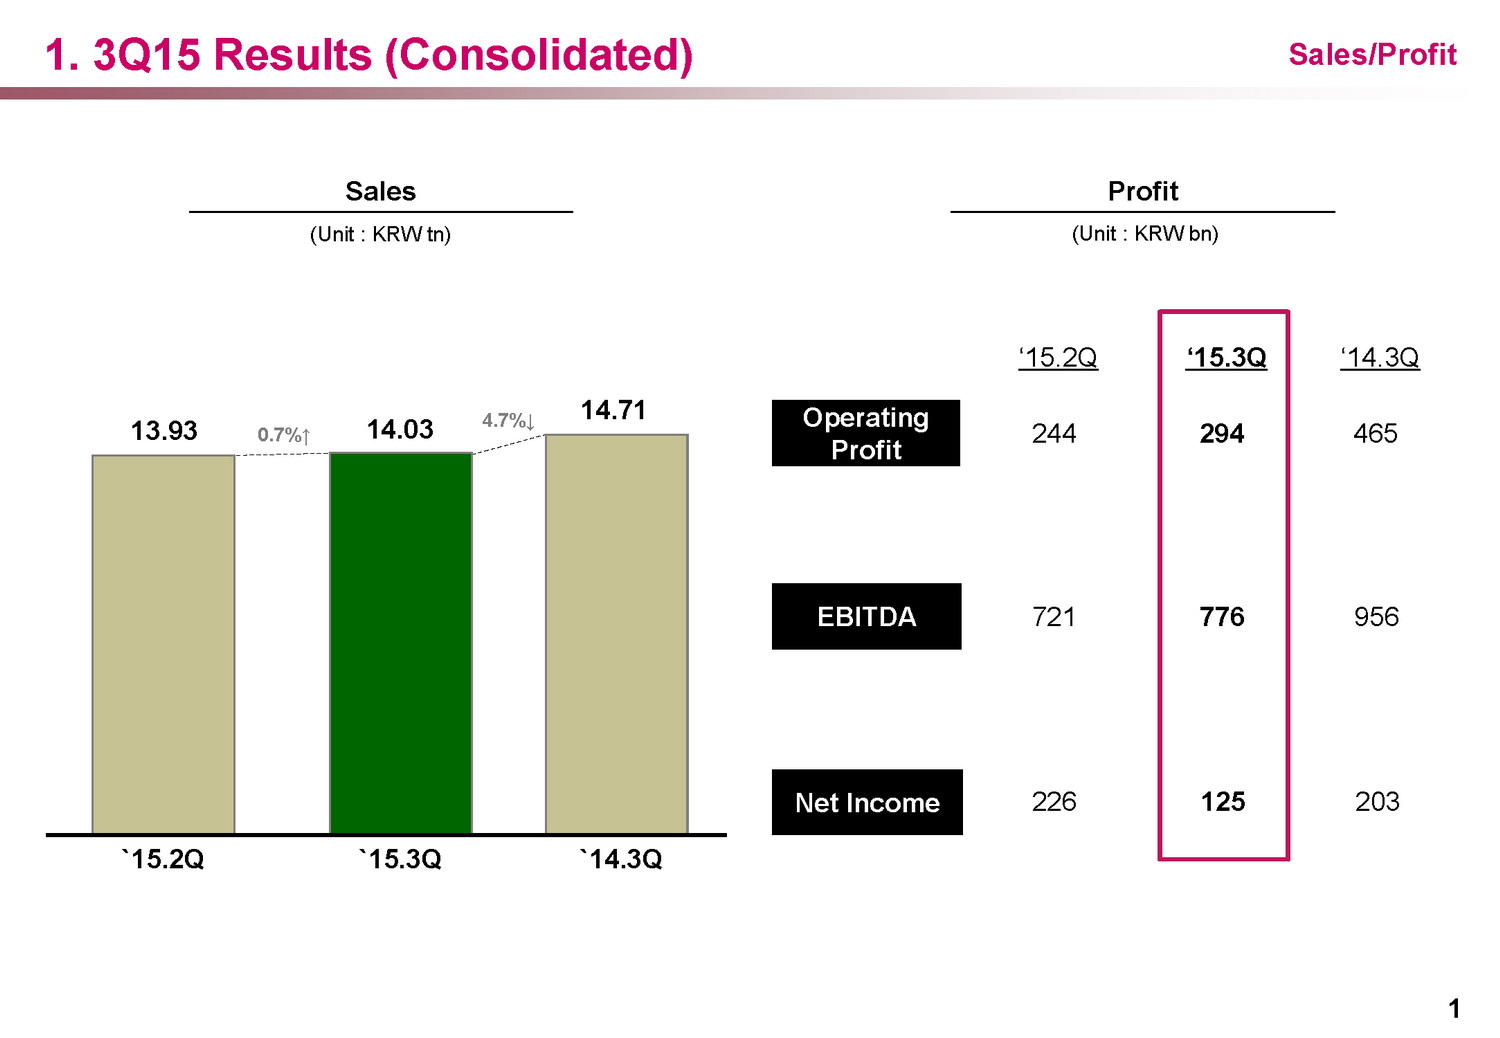 LG reporting lower sales and profit slump for Q3 2015 ...